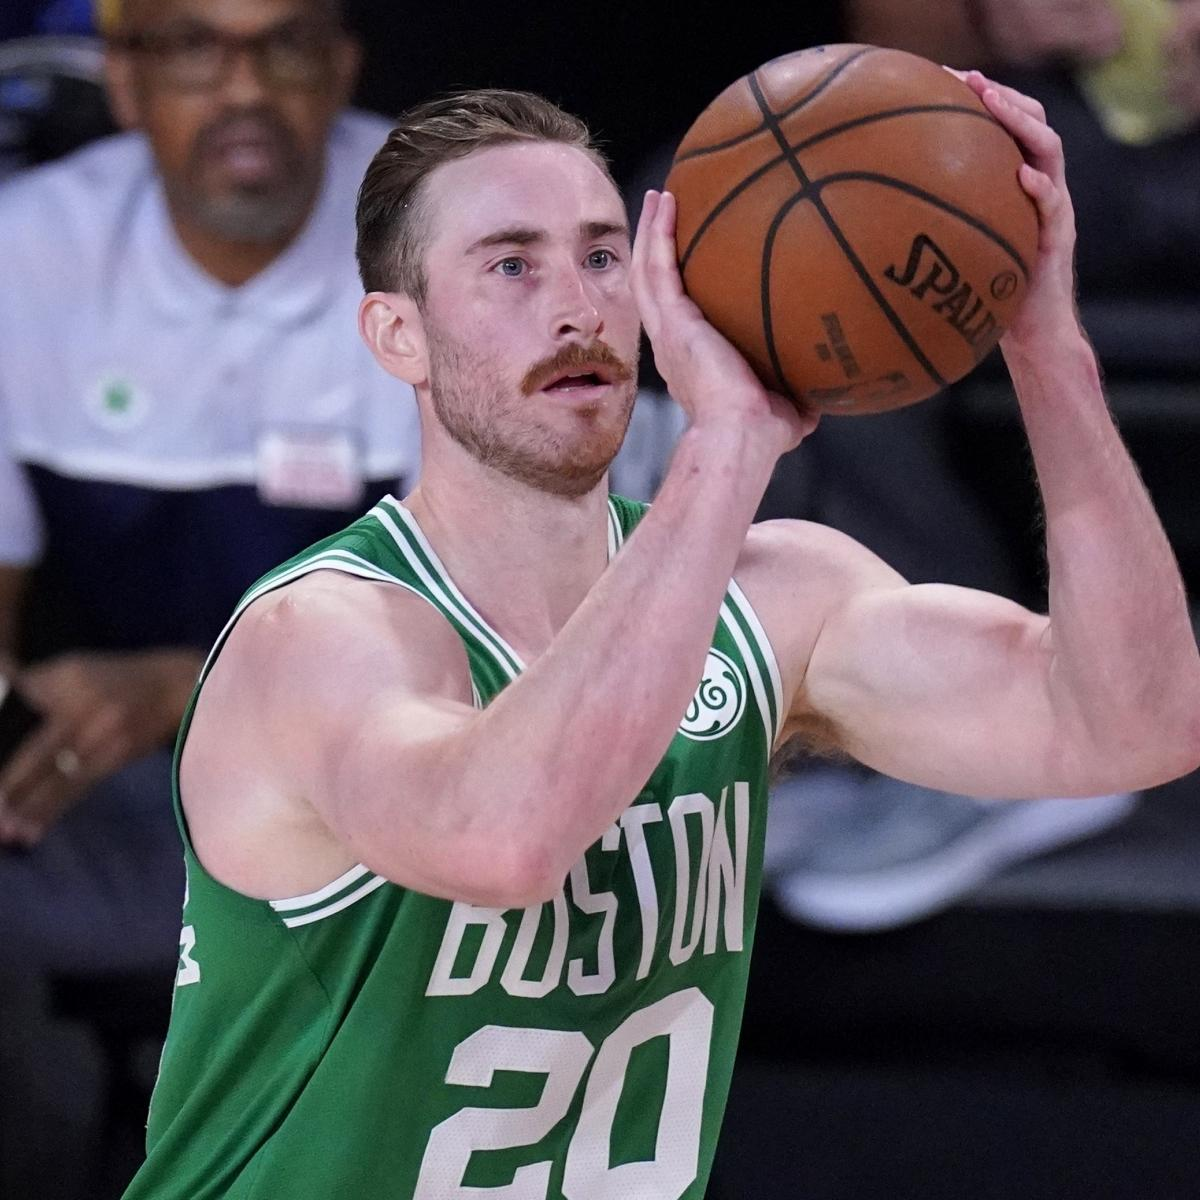 Celtics Rumors: Latest Buzz on Gordon Hayward Trade, Enes Kanter Contract, More